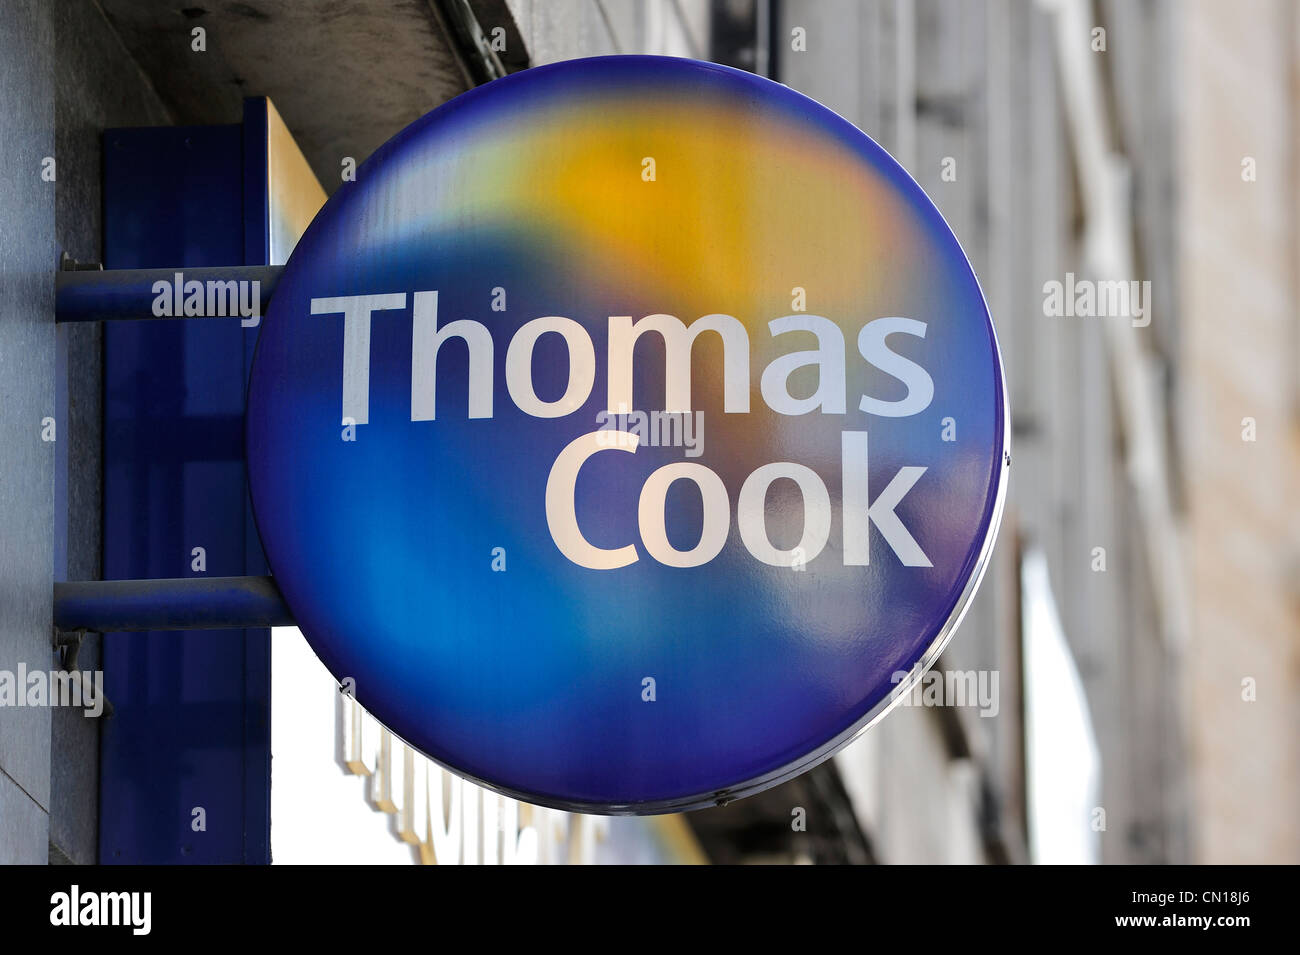 Signboard with logo of Thomas Cook travel agency, Flanders, Belgium - Stock Image